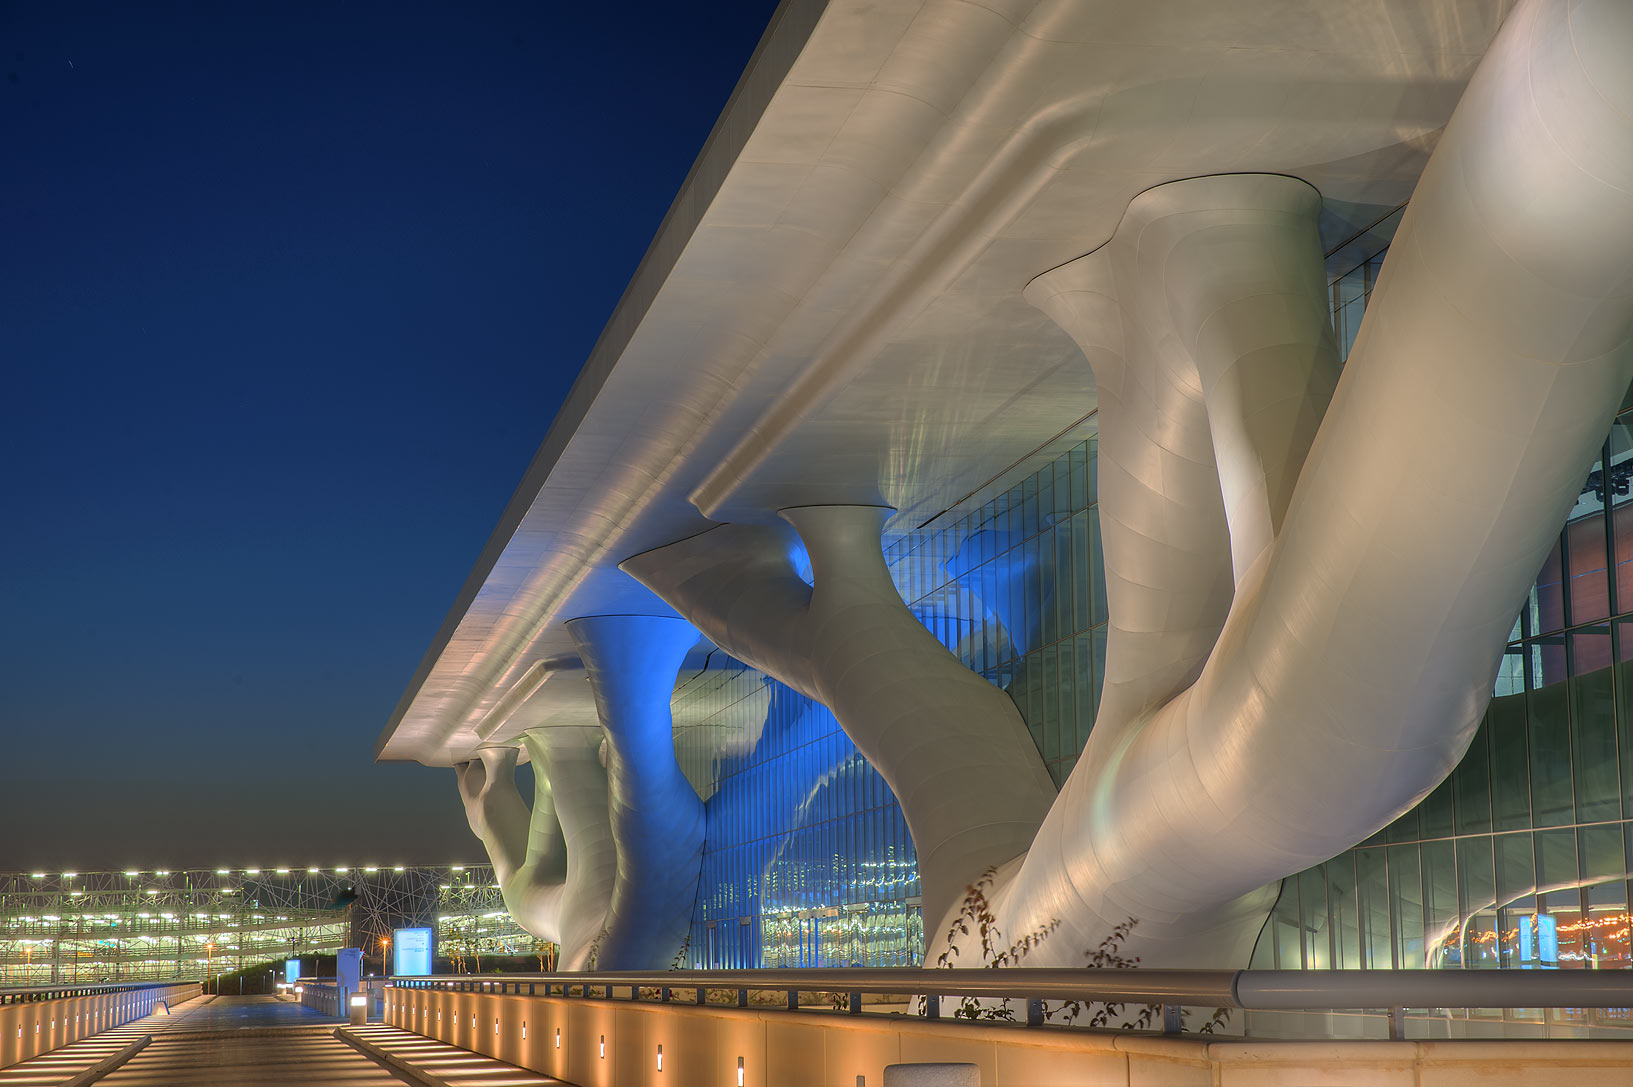 Front side of National Convention Centre (QNCC...supporting the roof. Doha, Qatar